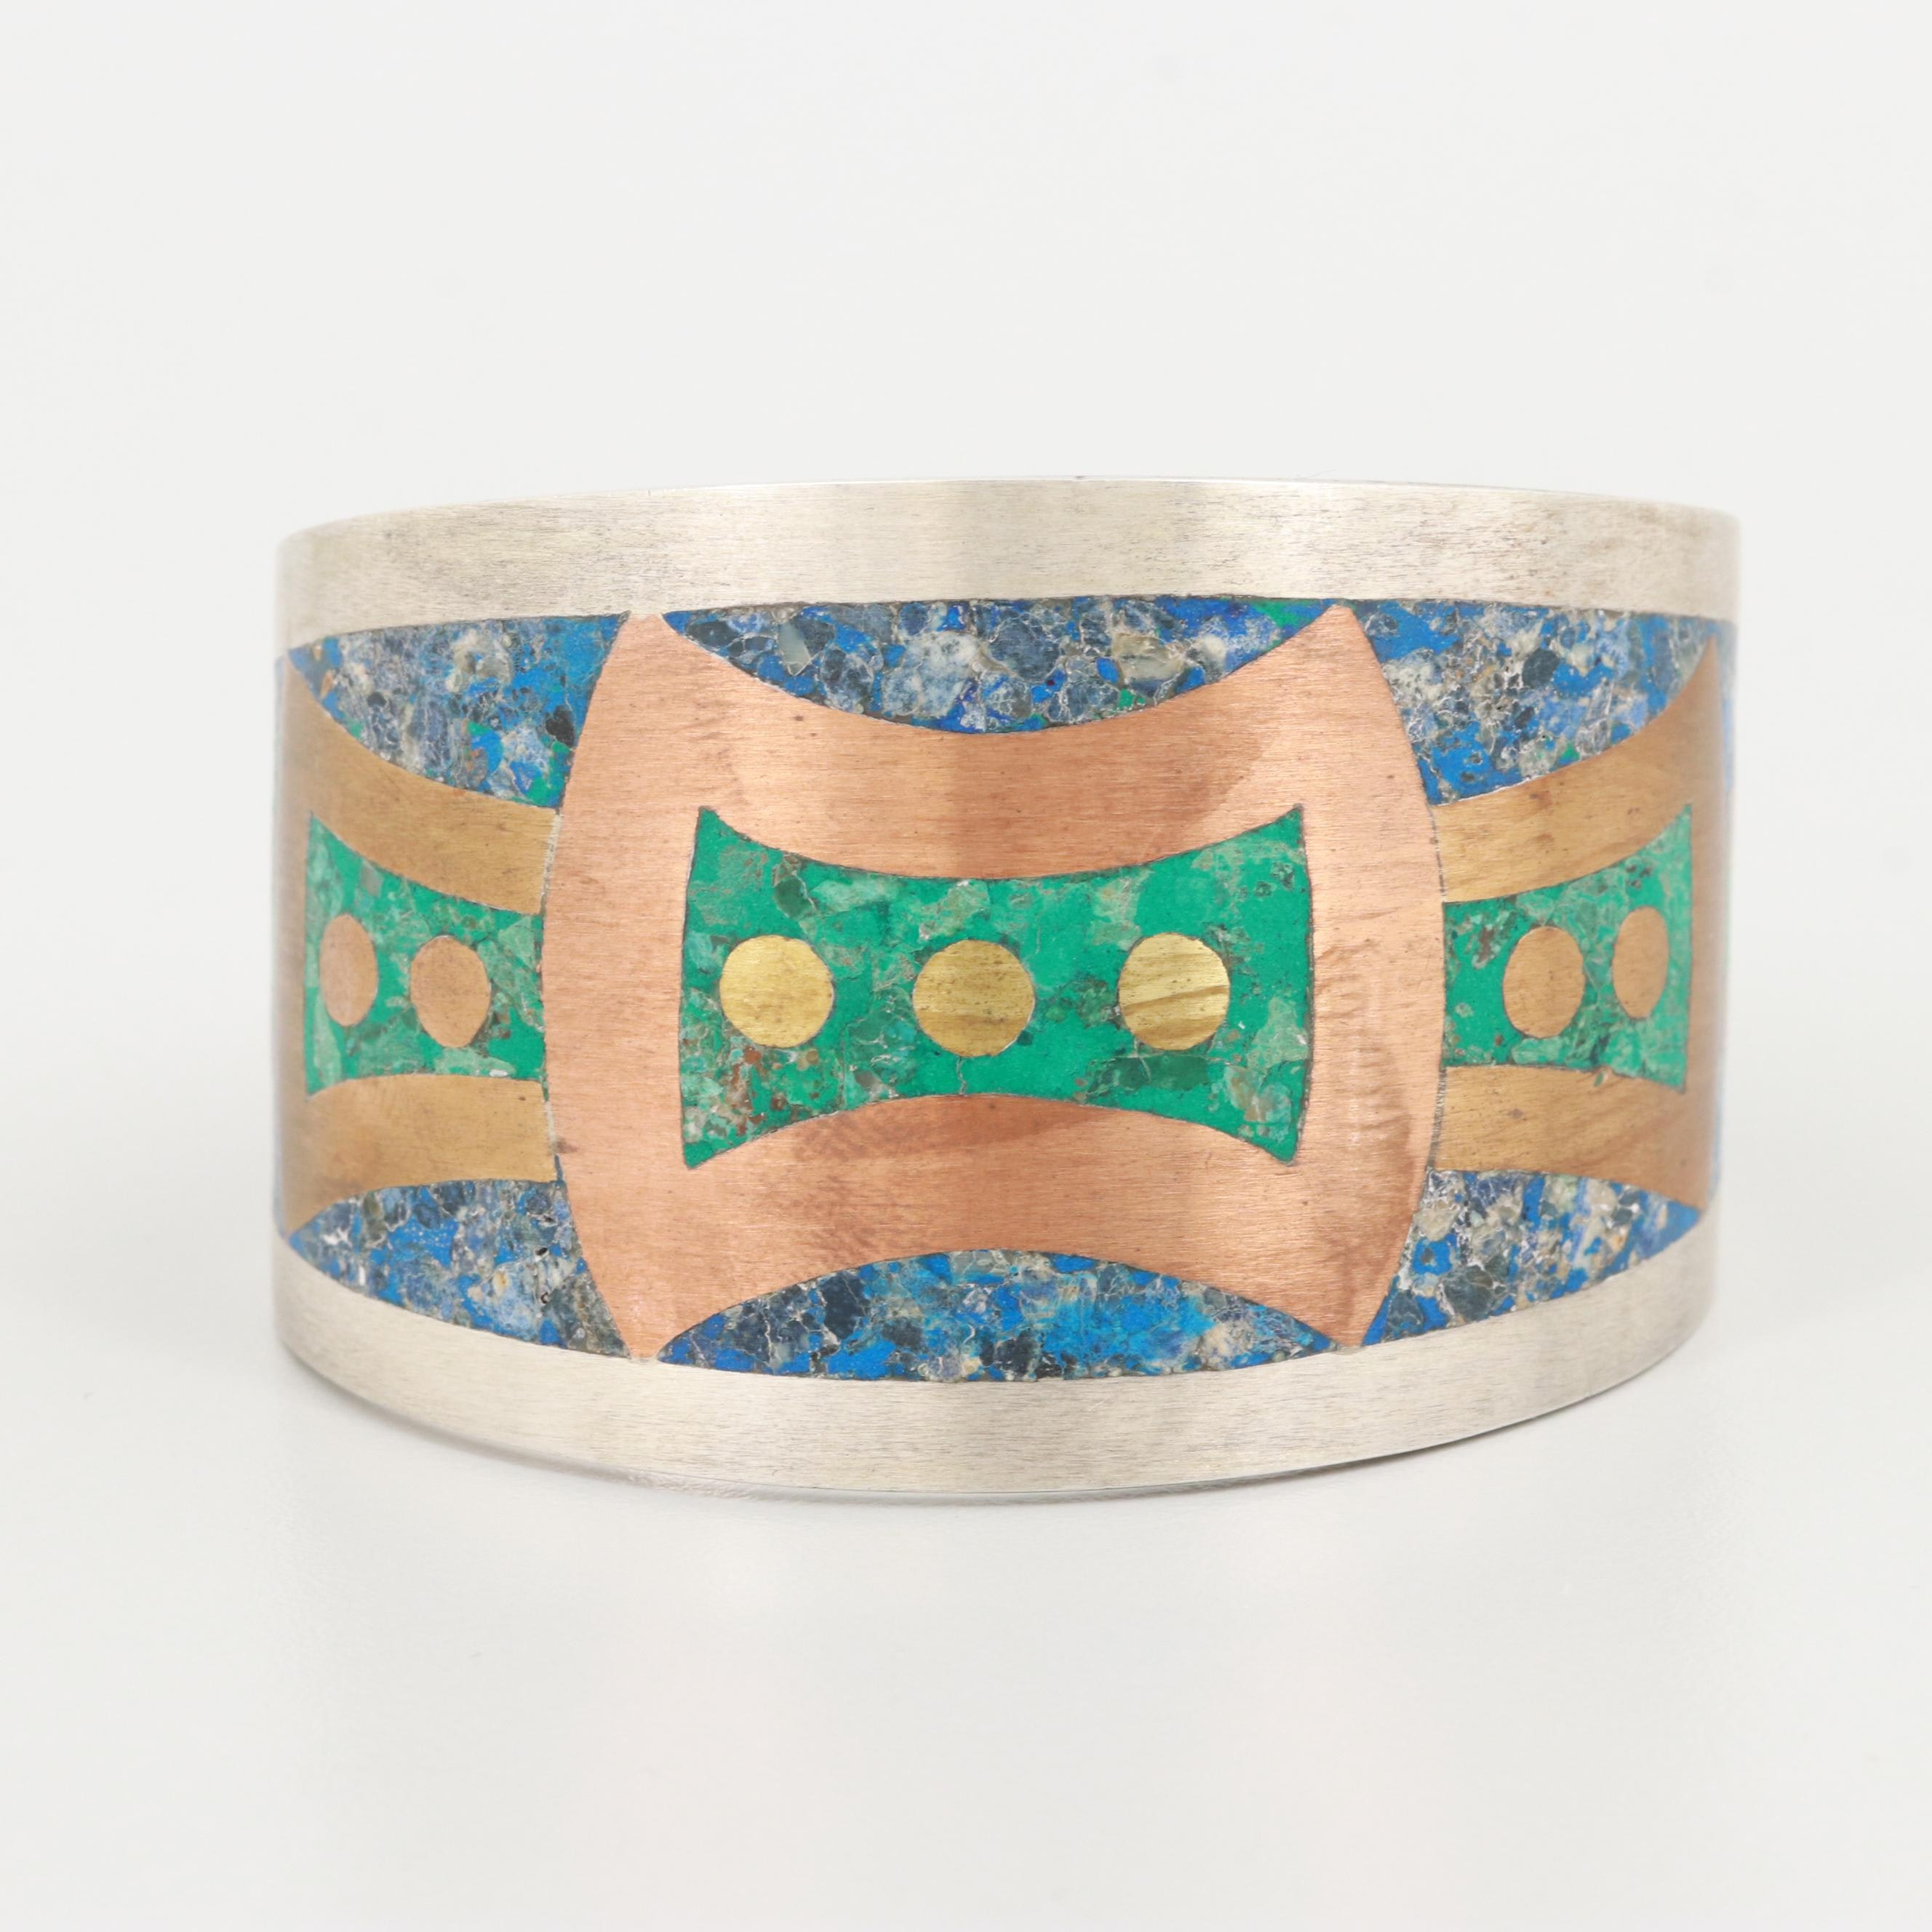 Taxco Sterling Gemstone Inlay Cuff Bracelet with Copper and Gold Tone Accents